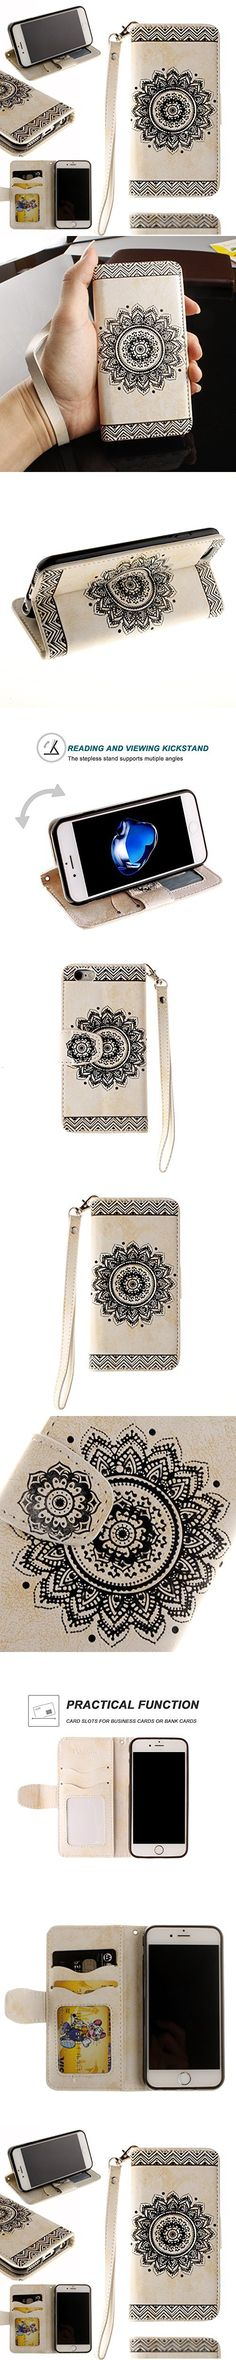 Mother's Day Gifts-For iPhone 7Plus Wallet Case,Valentoria Mandragora Flower Premium Vintage Emboss Leather Wallet Pouch Case with Wrist Strap for iPhone 7 5.5inch (White)